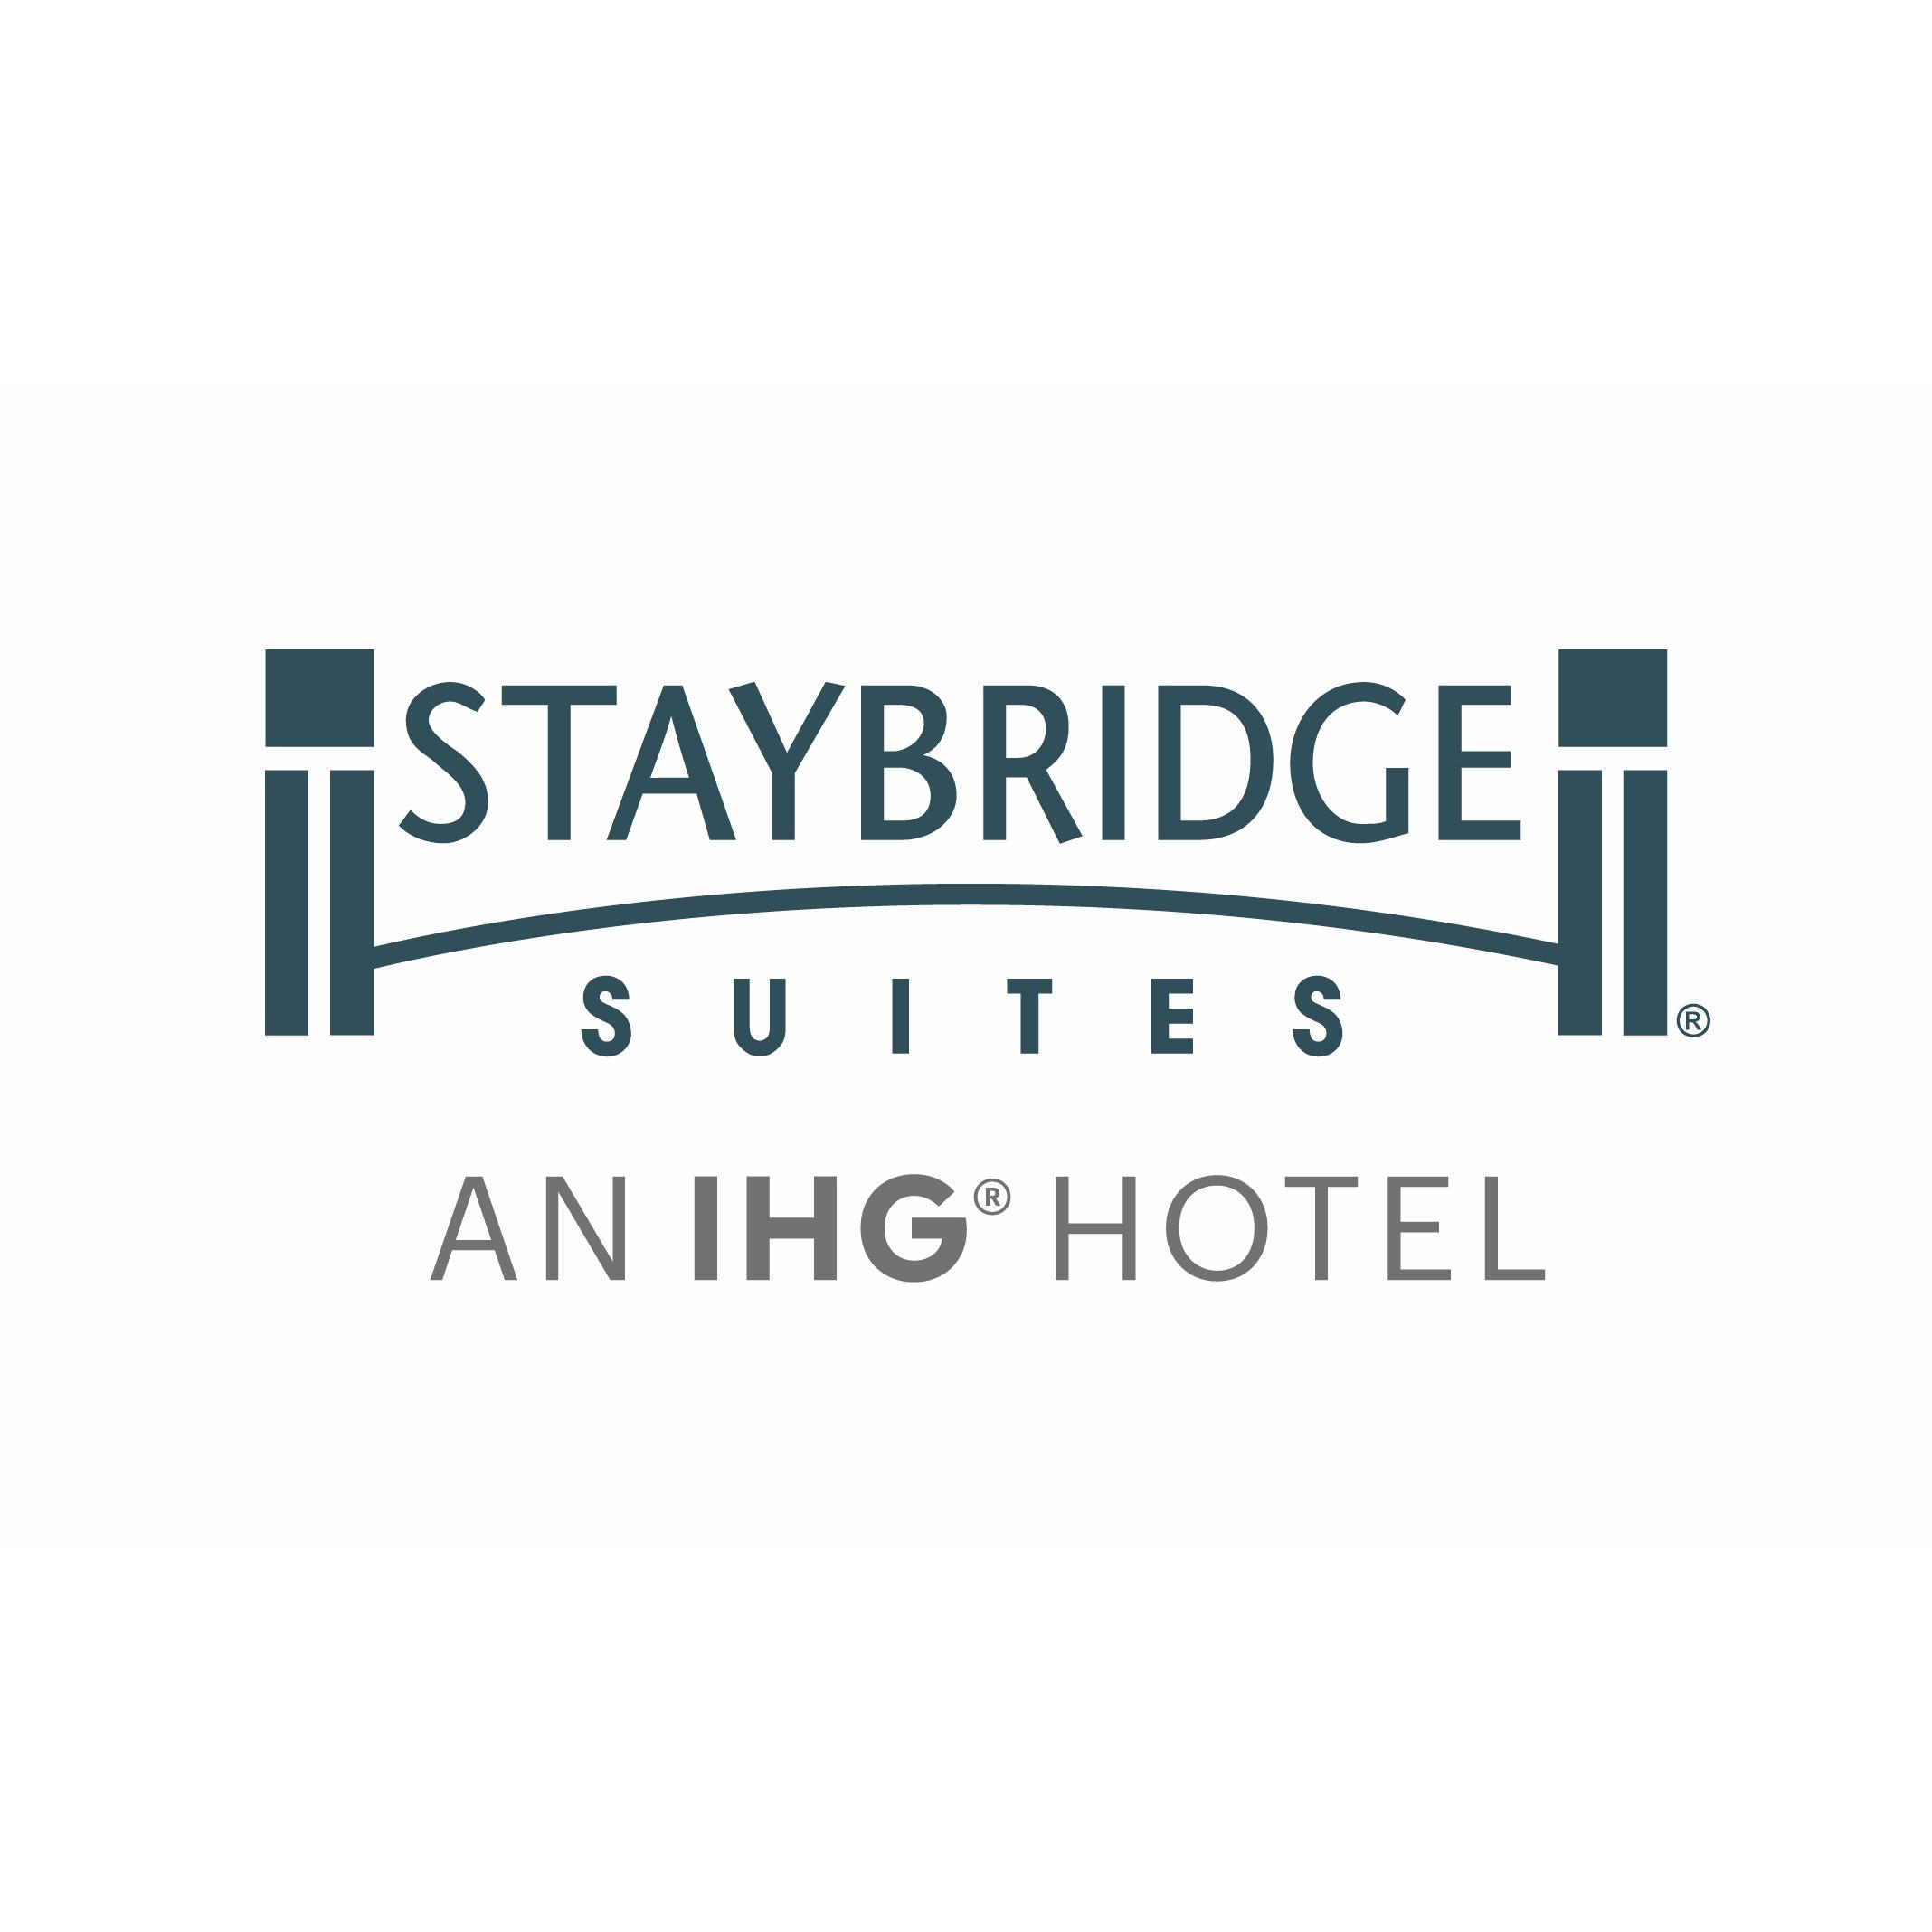 Staybridge Suites San Antonio-Airport image 4